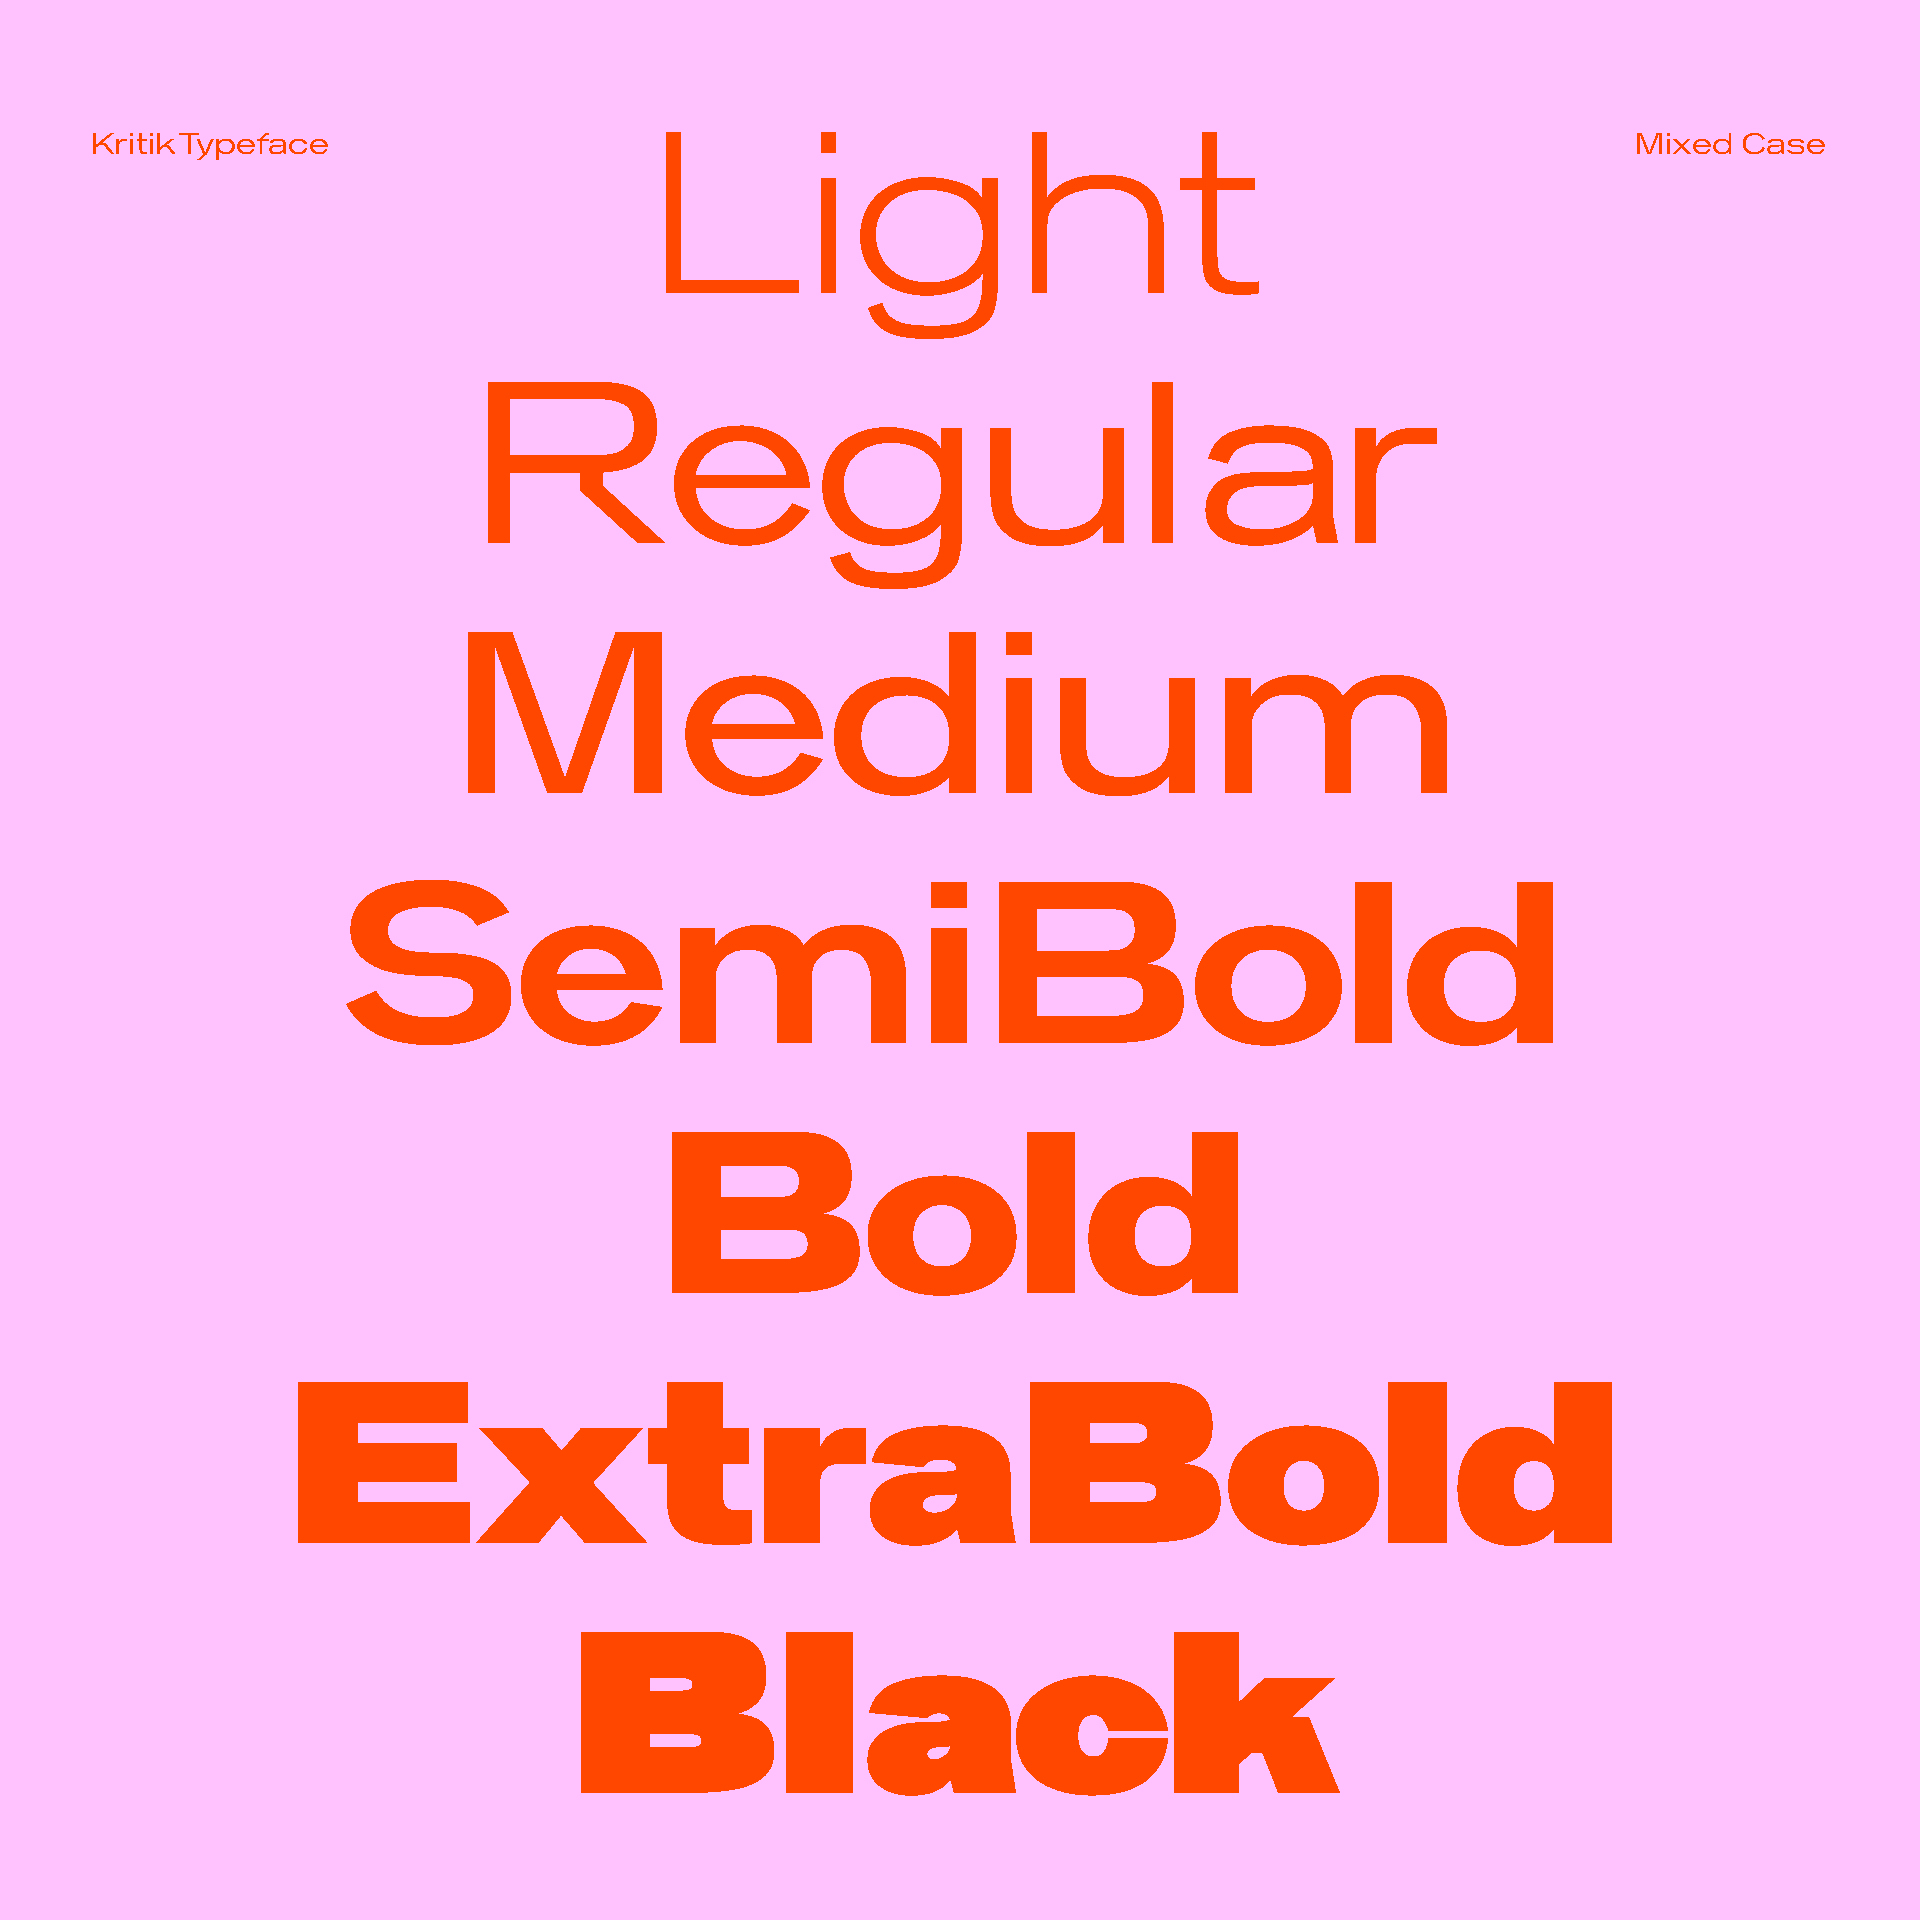 Kritik Typeface Weights